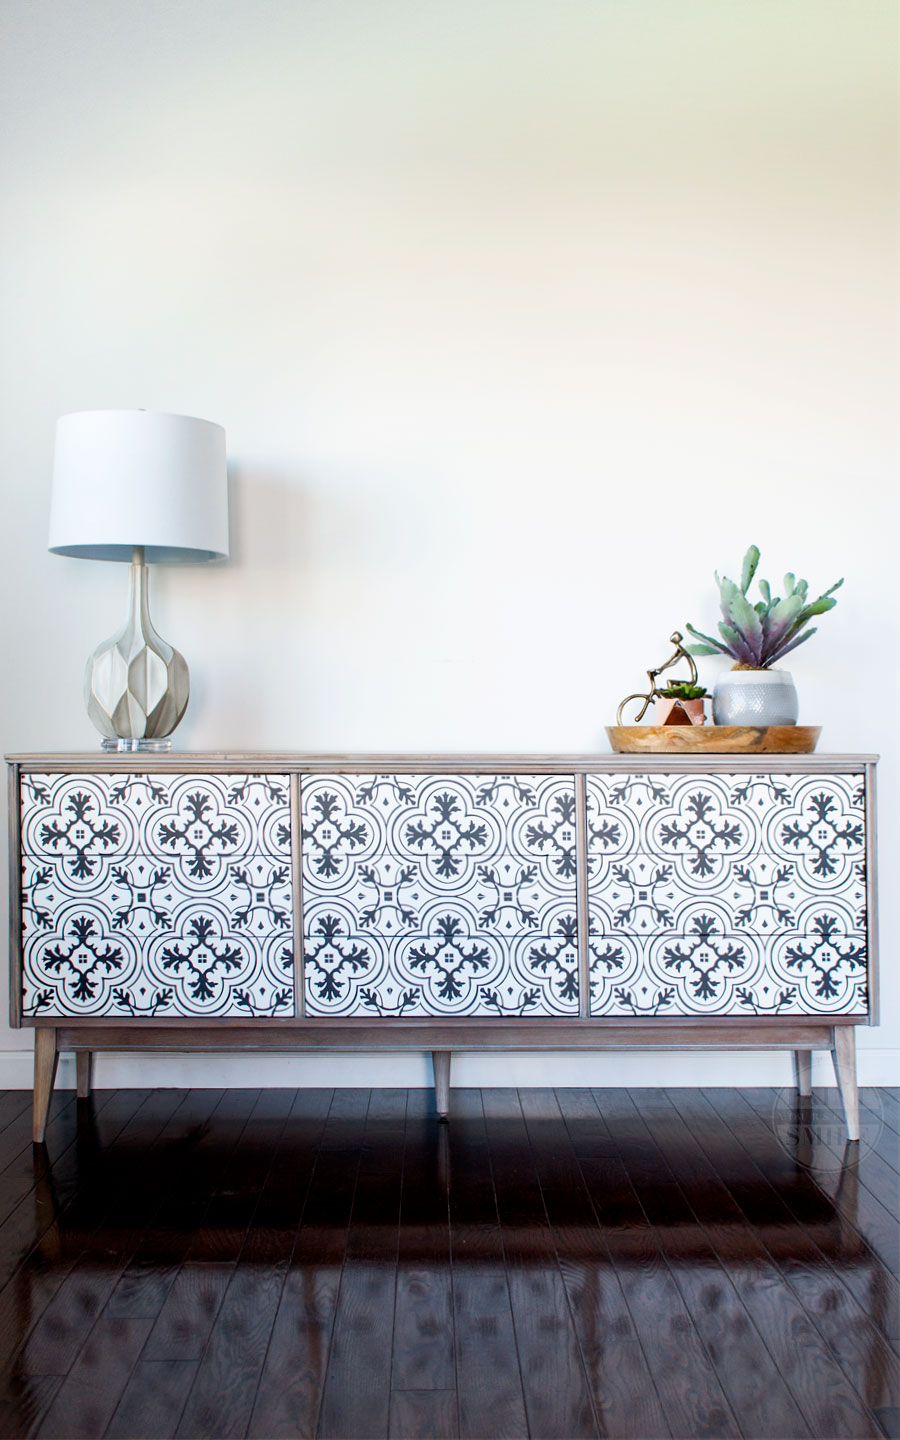 Awesome DIY MCM Dresser / Buffet Makeover using vintage cement tile pattern. I love custom painted mid-century modern furniture.